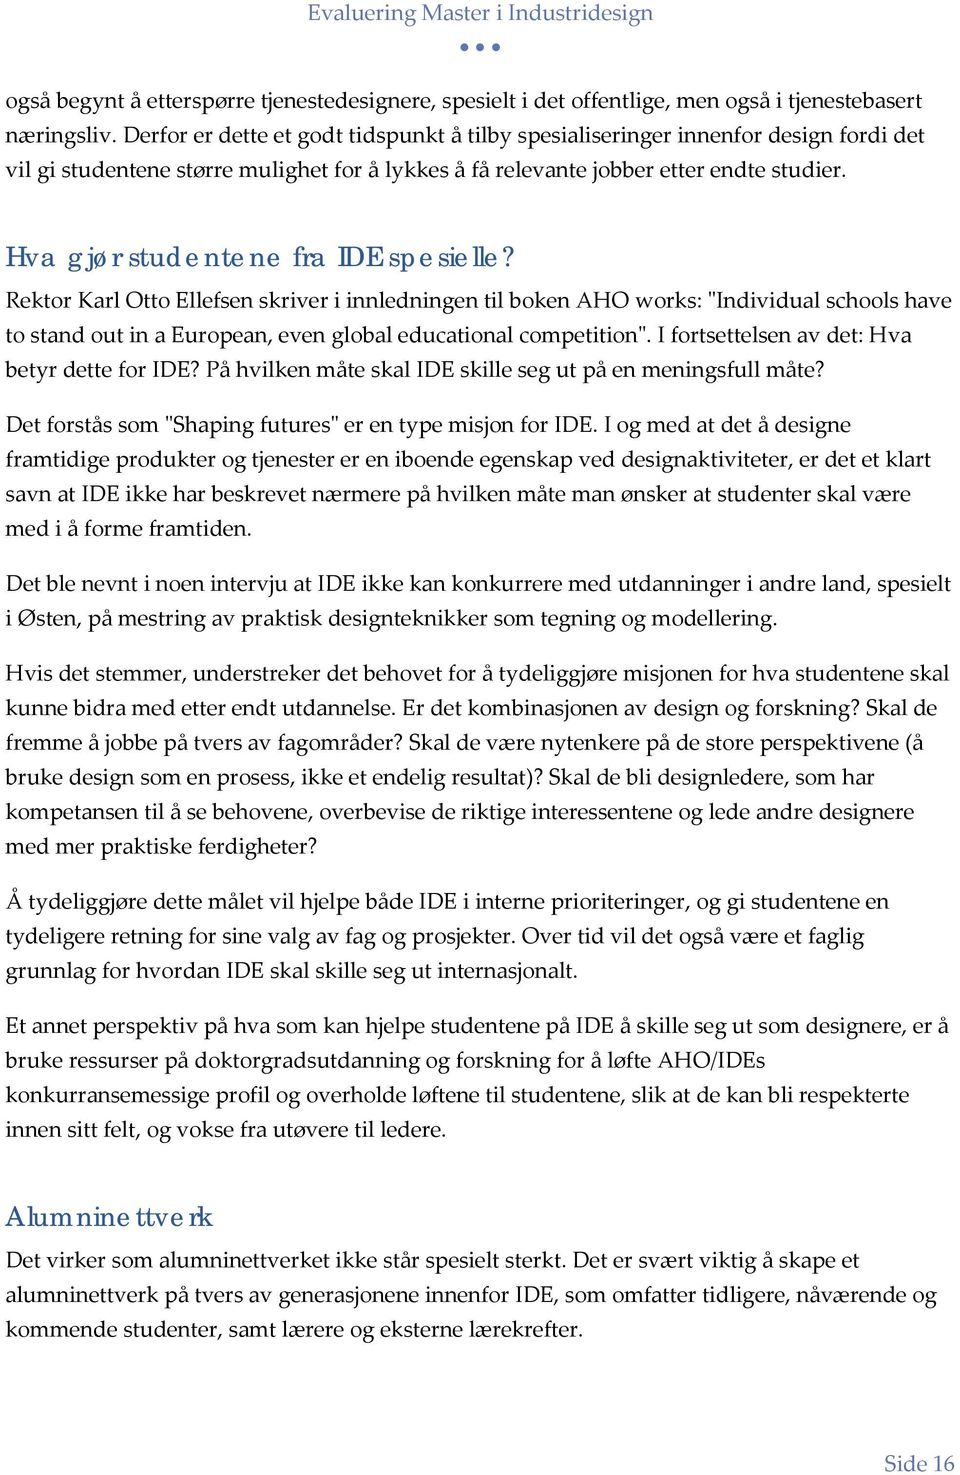 "Hva gjør studentene fra IDE spesielle? Rektor Karl Otto Ellefsen skriver i innledningen til boken AHO works: ""Individual schools have to stand out in a European, even global educational competition""."